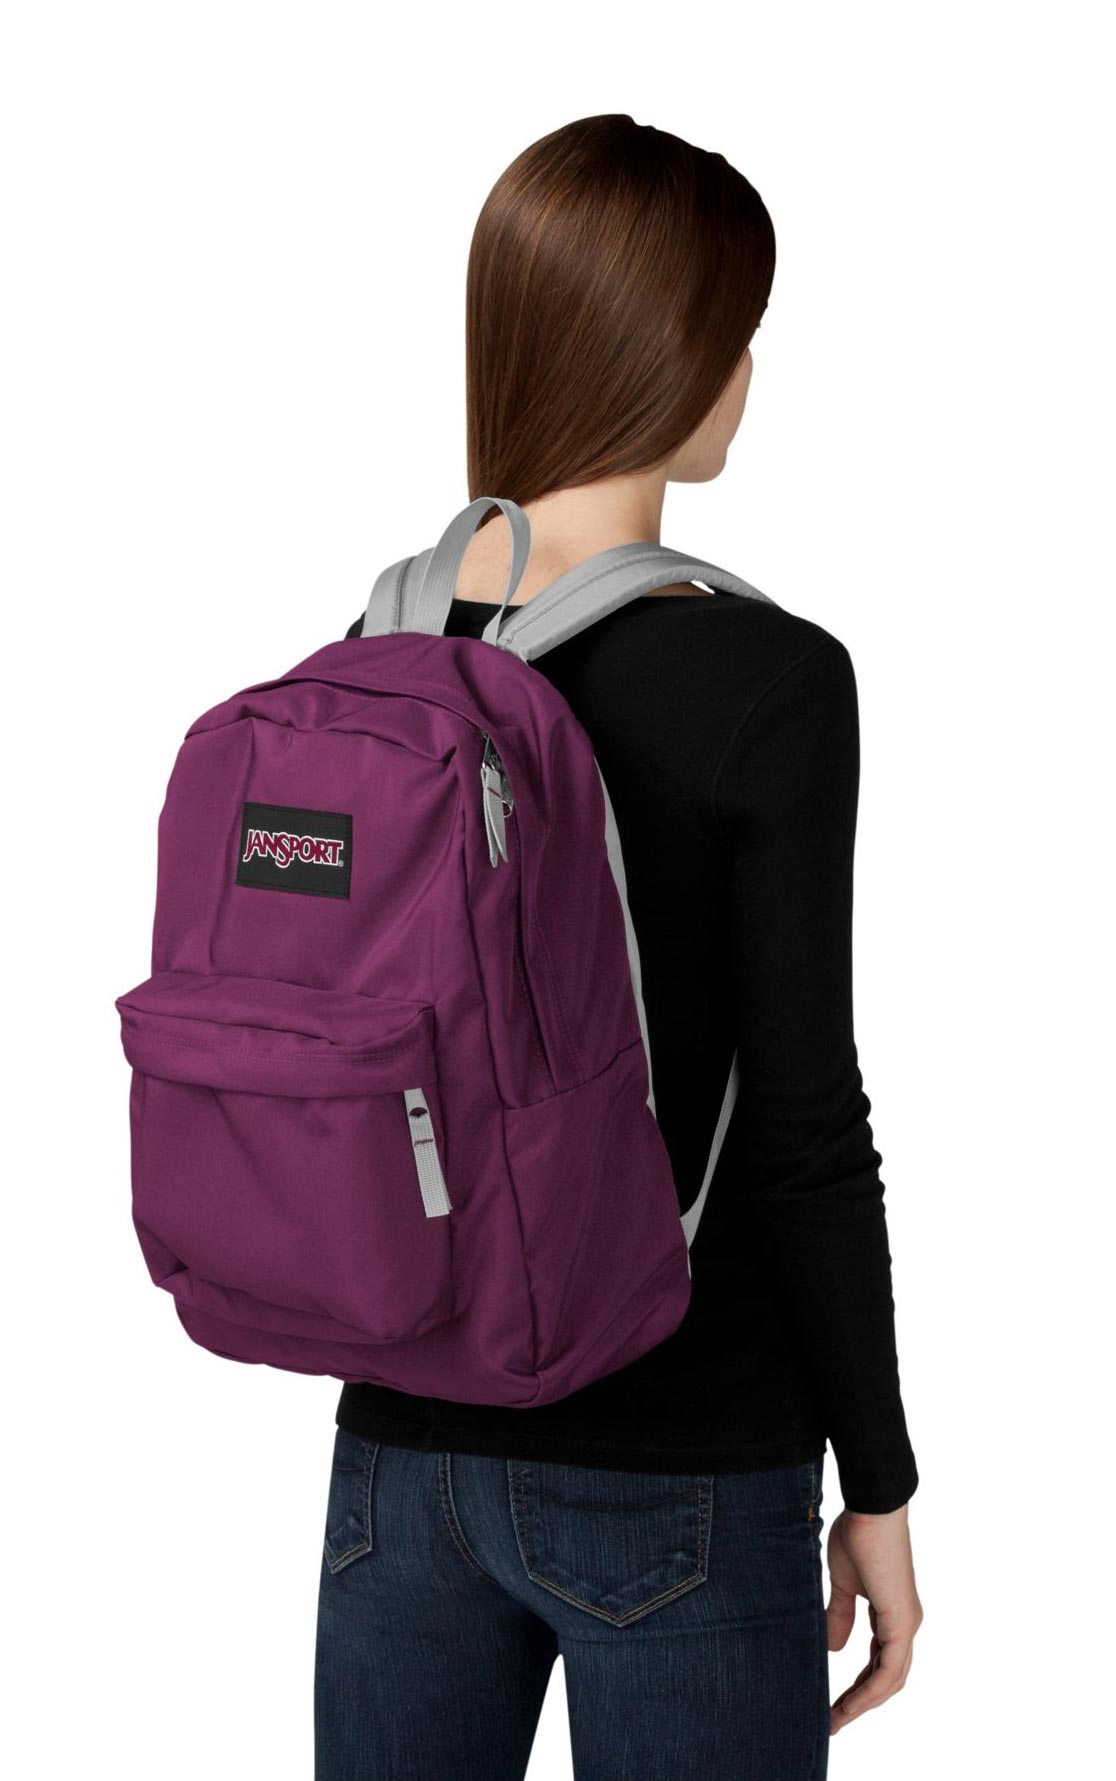 Jansport Classic Superbreak Backpack | Blingby